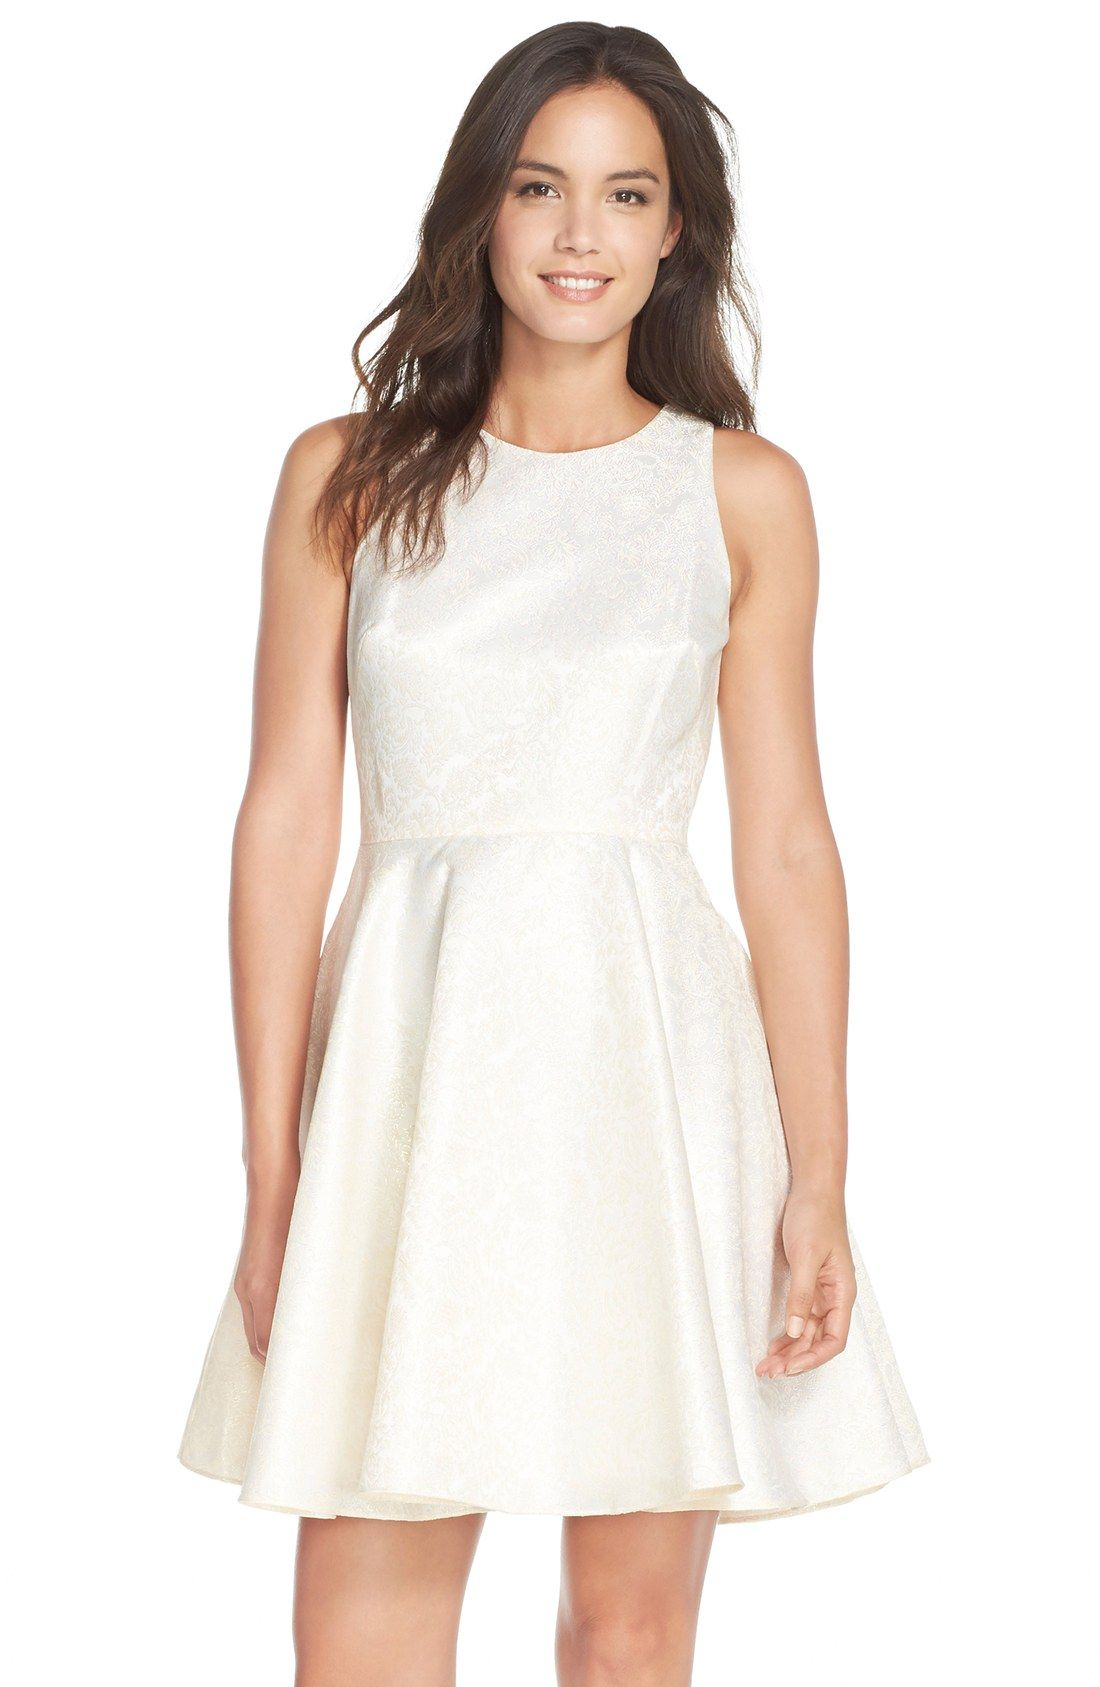 Fit and flare dress wedding  Joanna Chen New York Metallic Brocade Fit u Flare Dress  Wedding